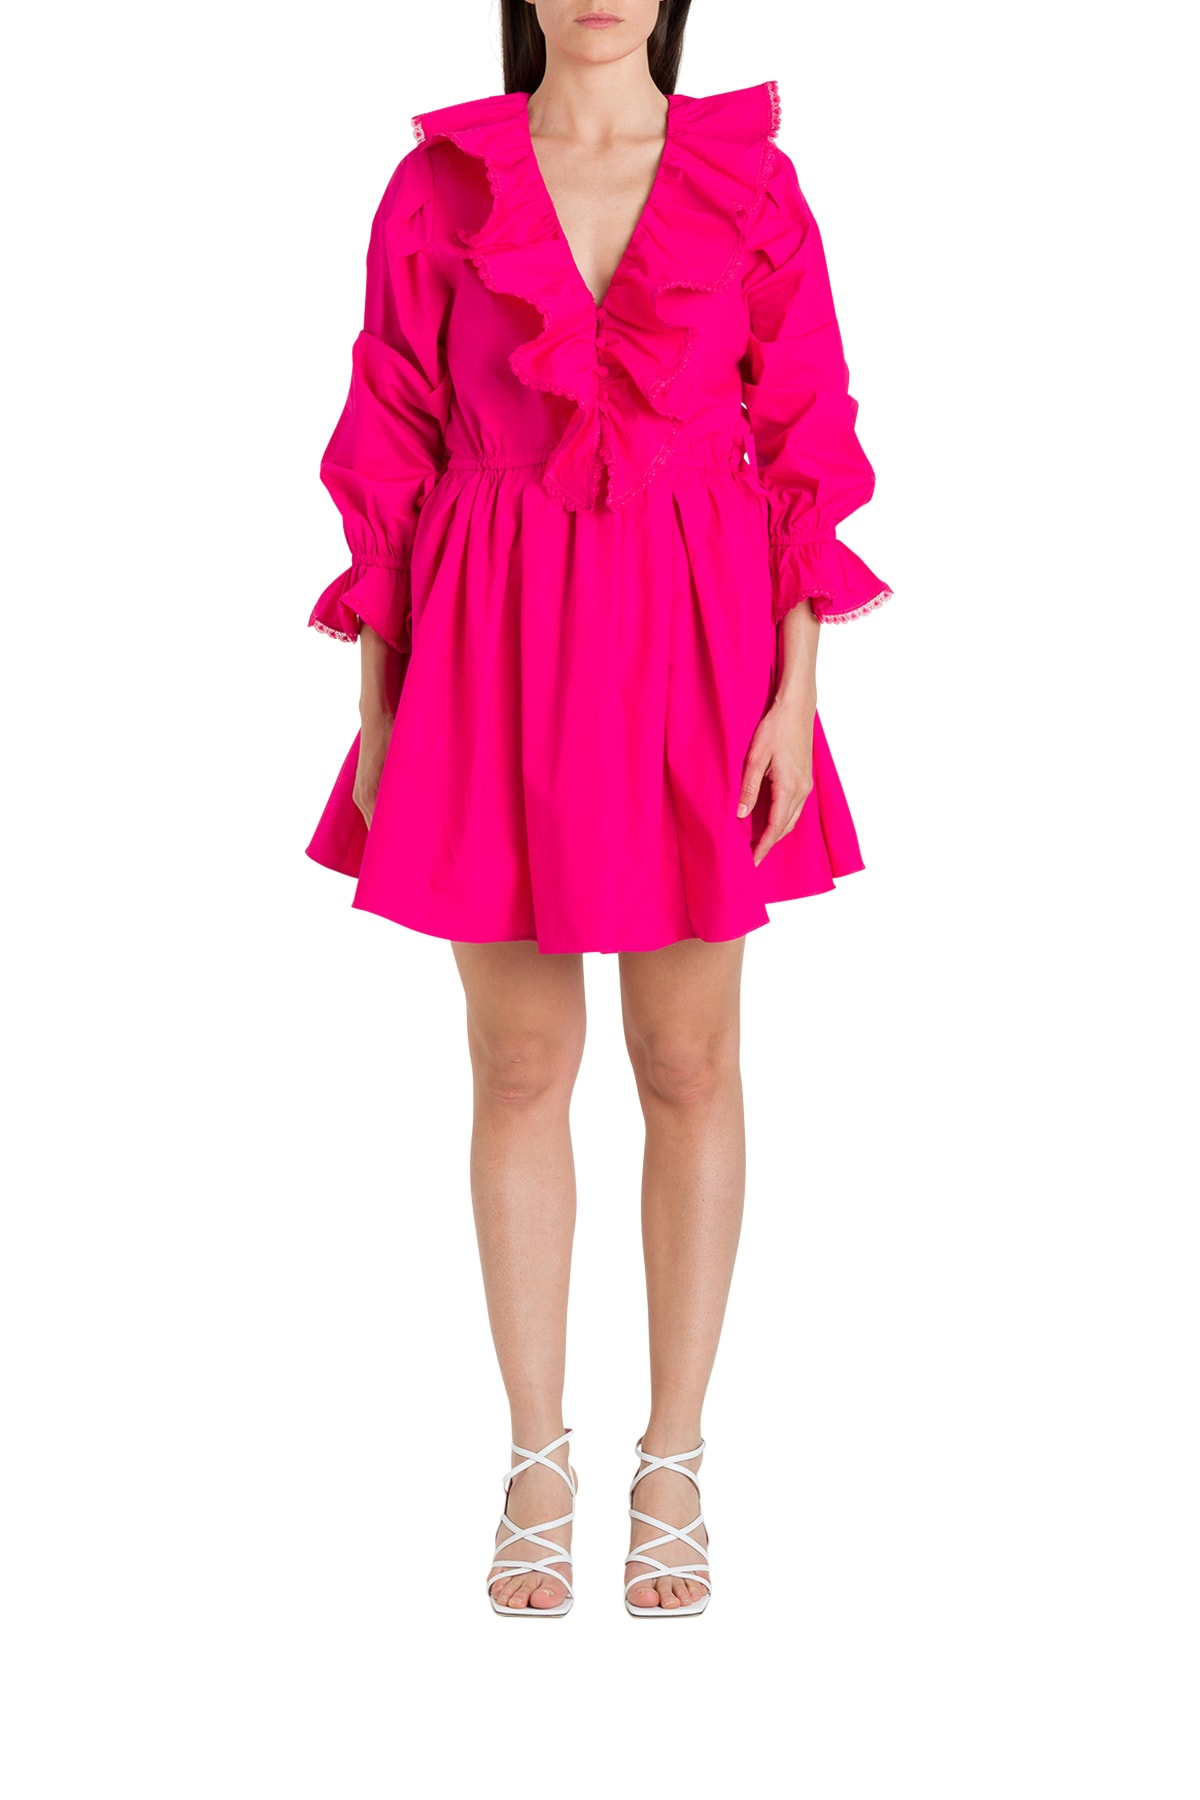 Buy self-portrait Ruffle Trimmig Dress online, shop self-portrait with free shipping